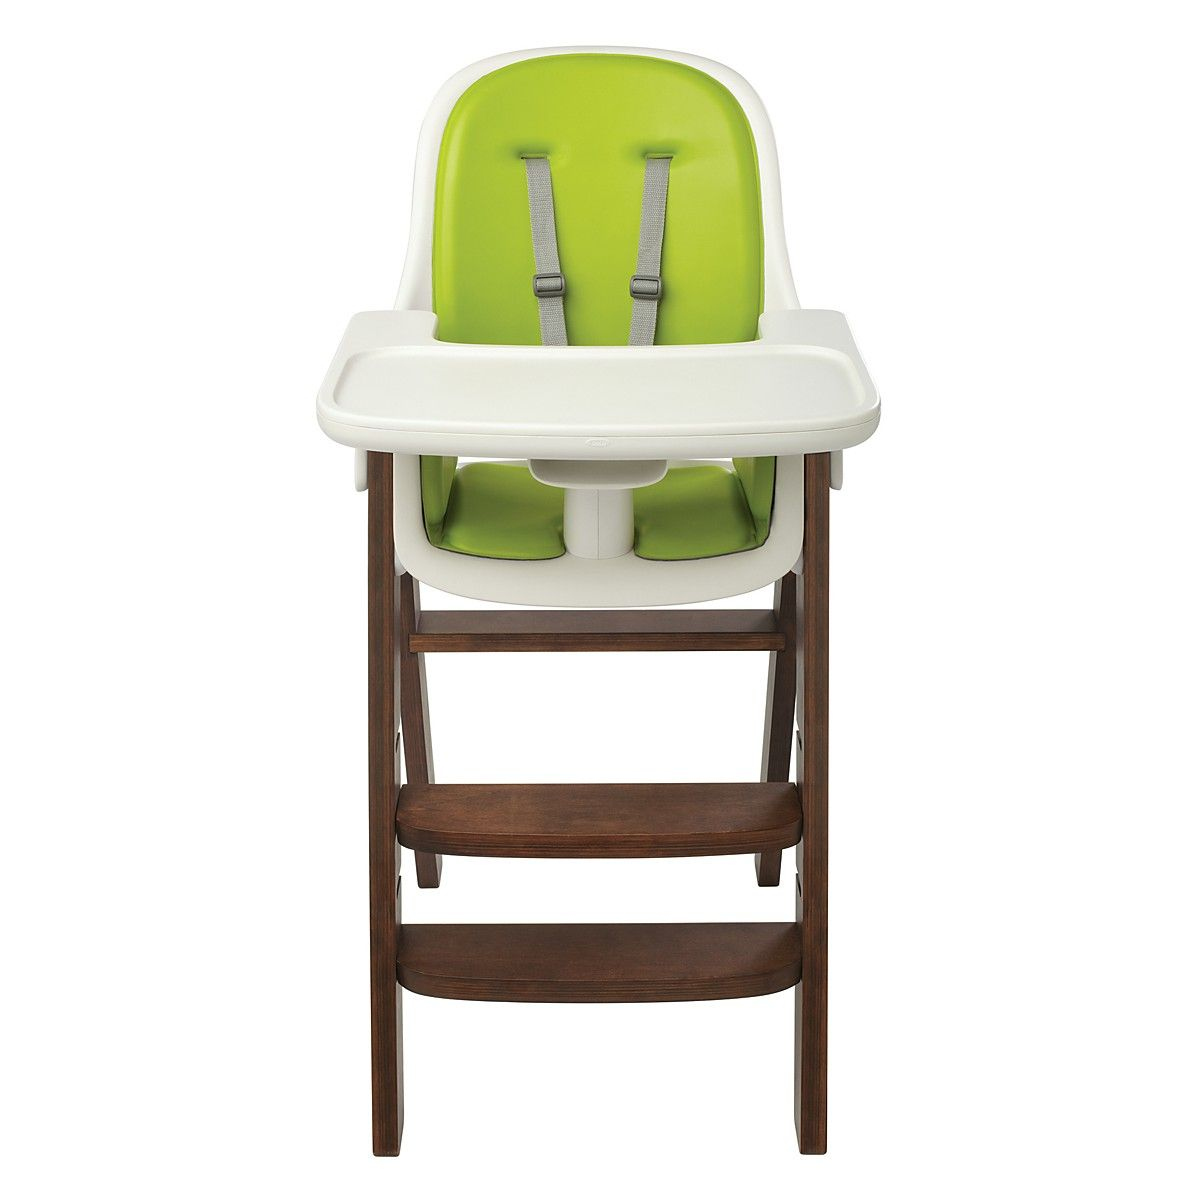 OXO Tot Sprout™ Chair Wooden high chairs, Baby high